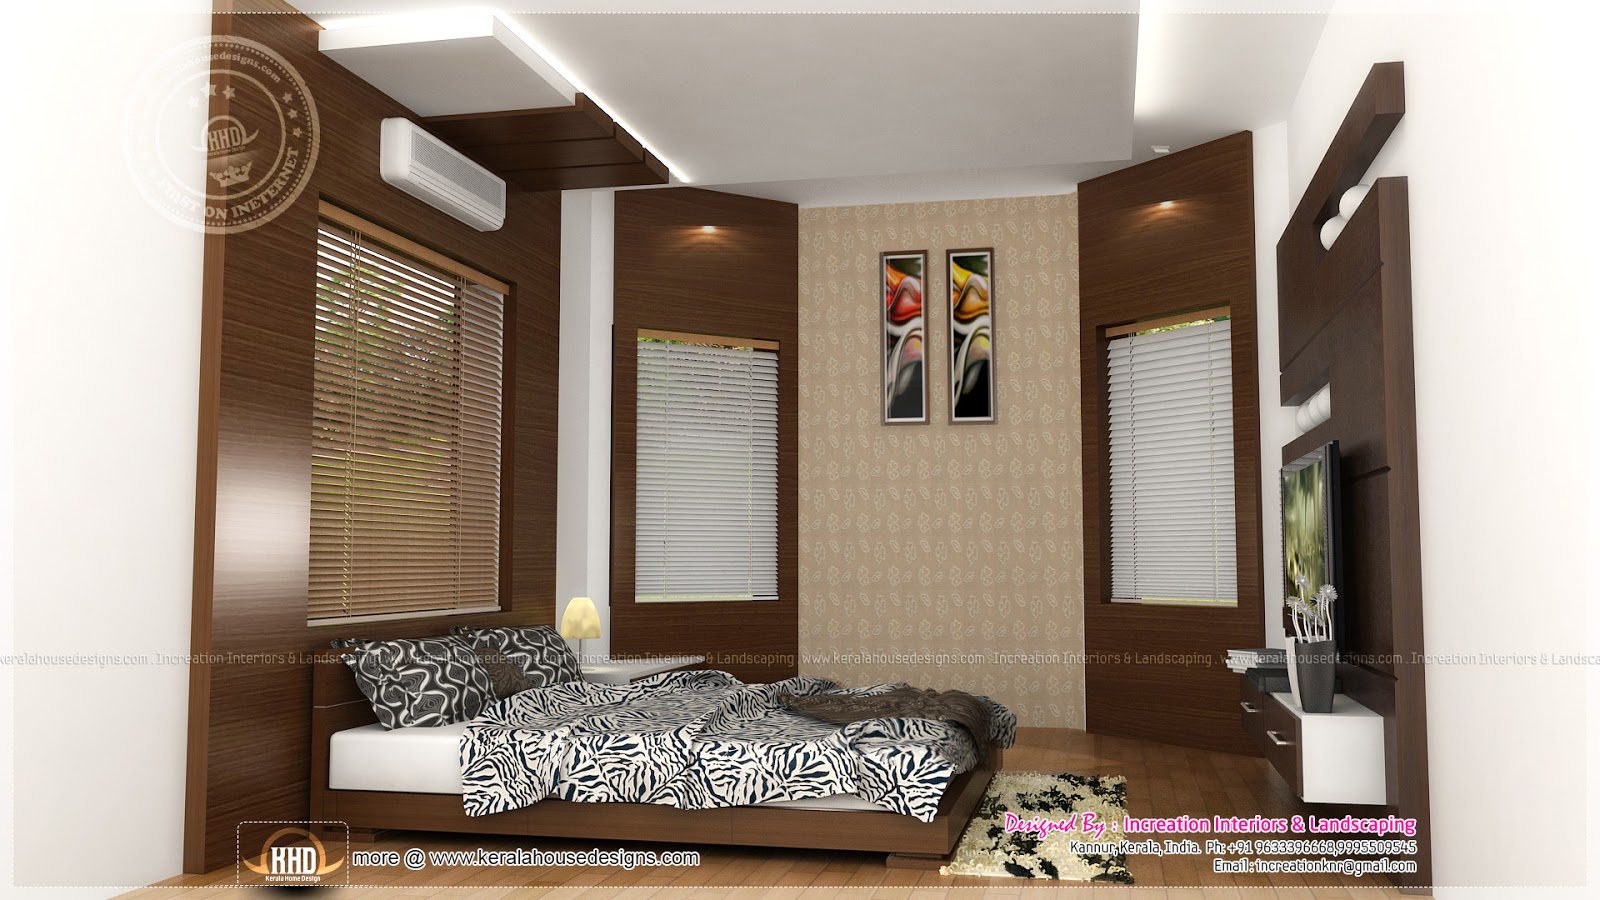 Interior designs by increation kannur kerala kerala for Bedroom designs middle class